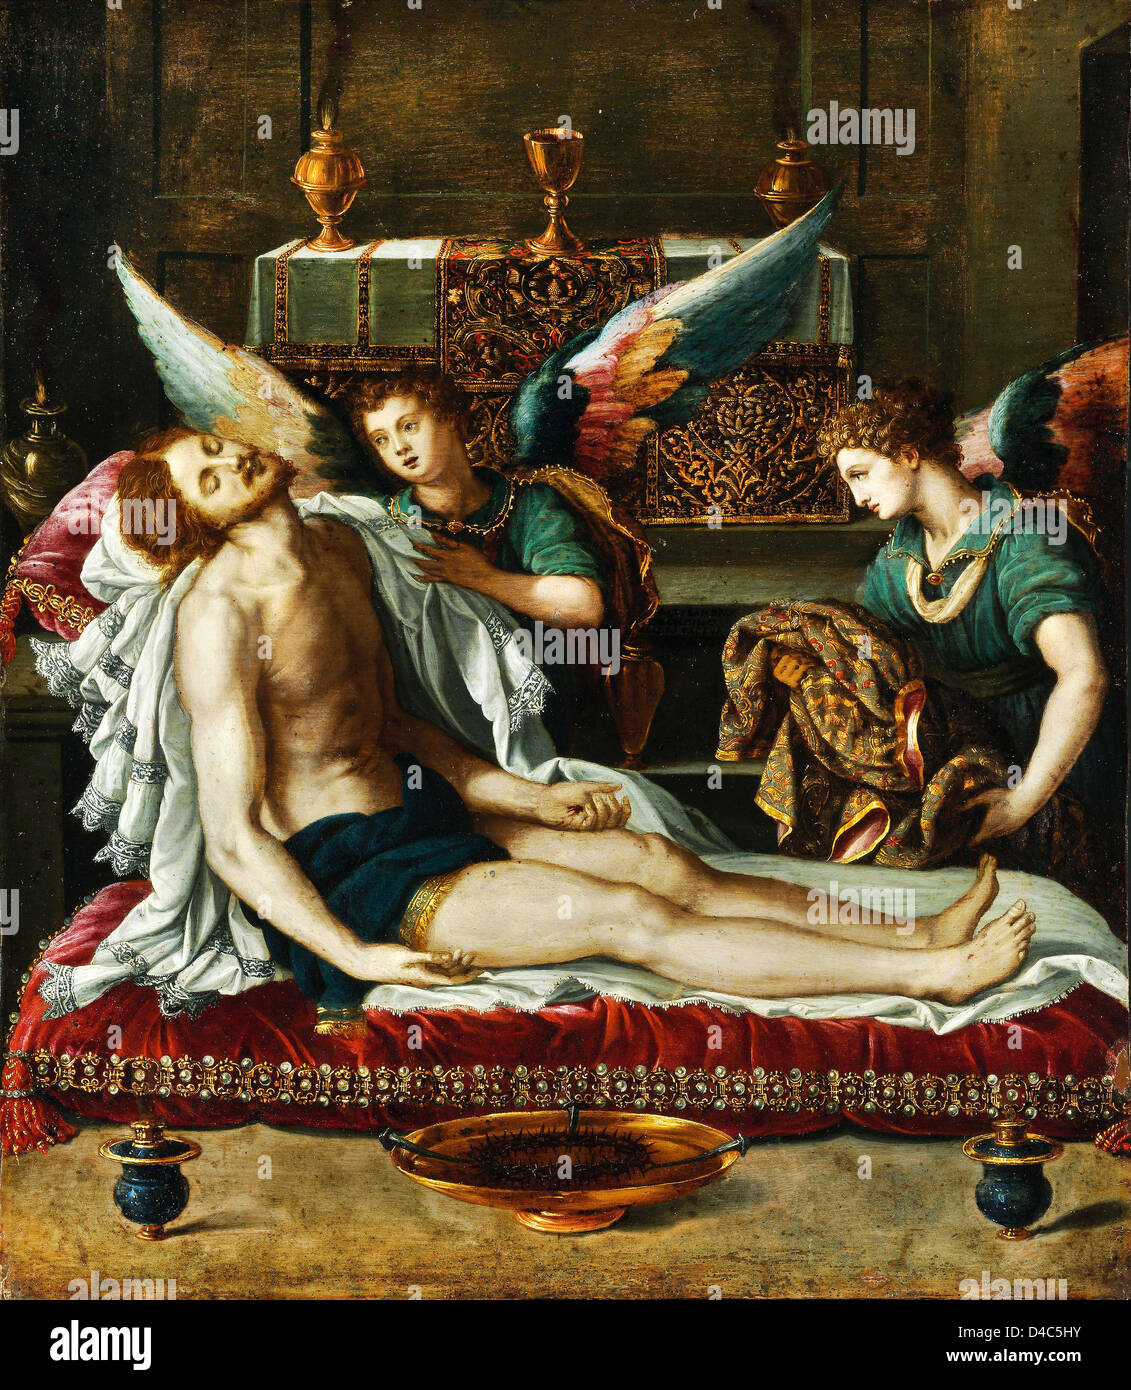 Alessandro Allori, The Body of Christ Anointed by Two Angels. Circa 1593 Oil on canvas. Museum of Fine Arts, Budapest - Stock Image